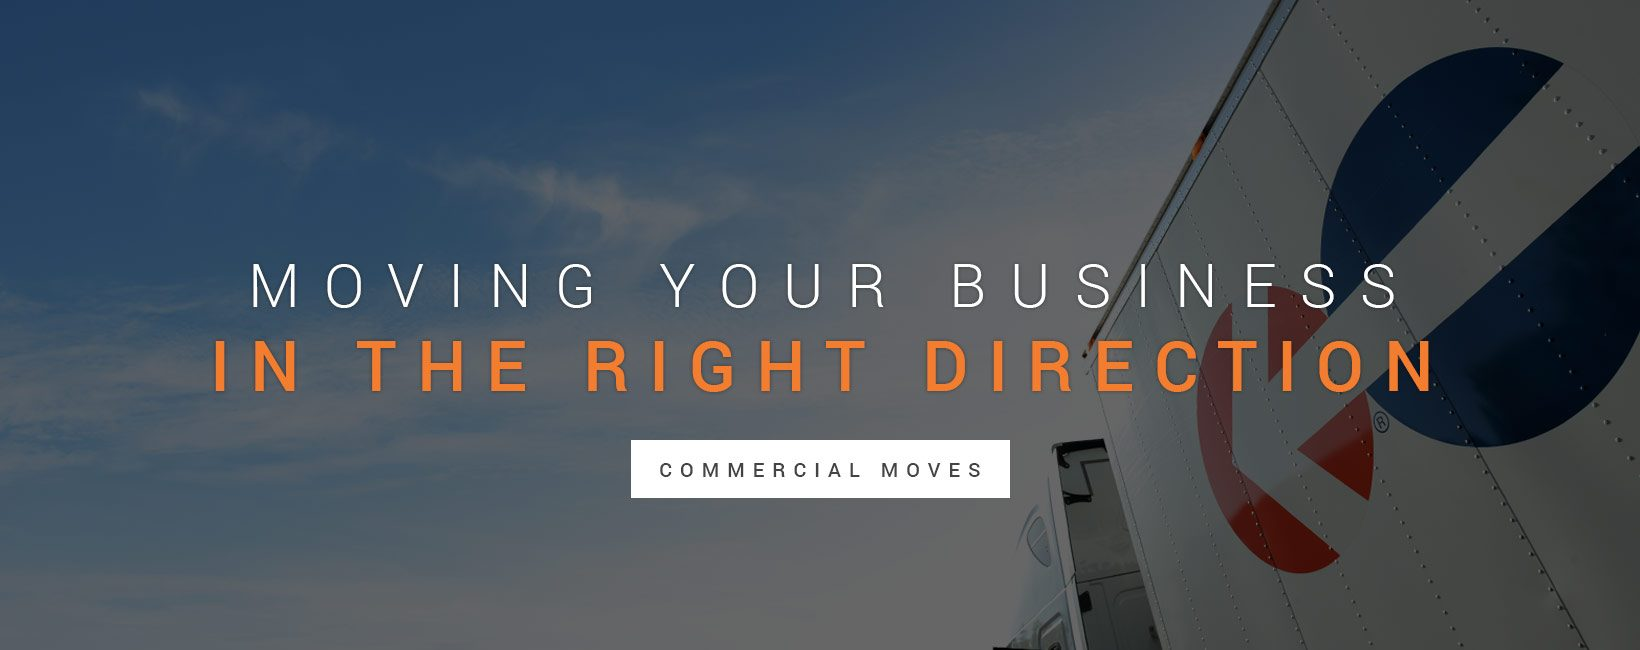 Moving Your Business in the Right Direction - Commercial Moves